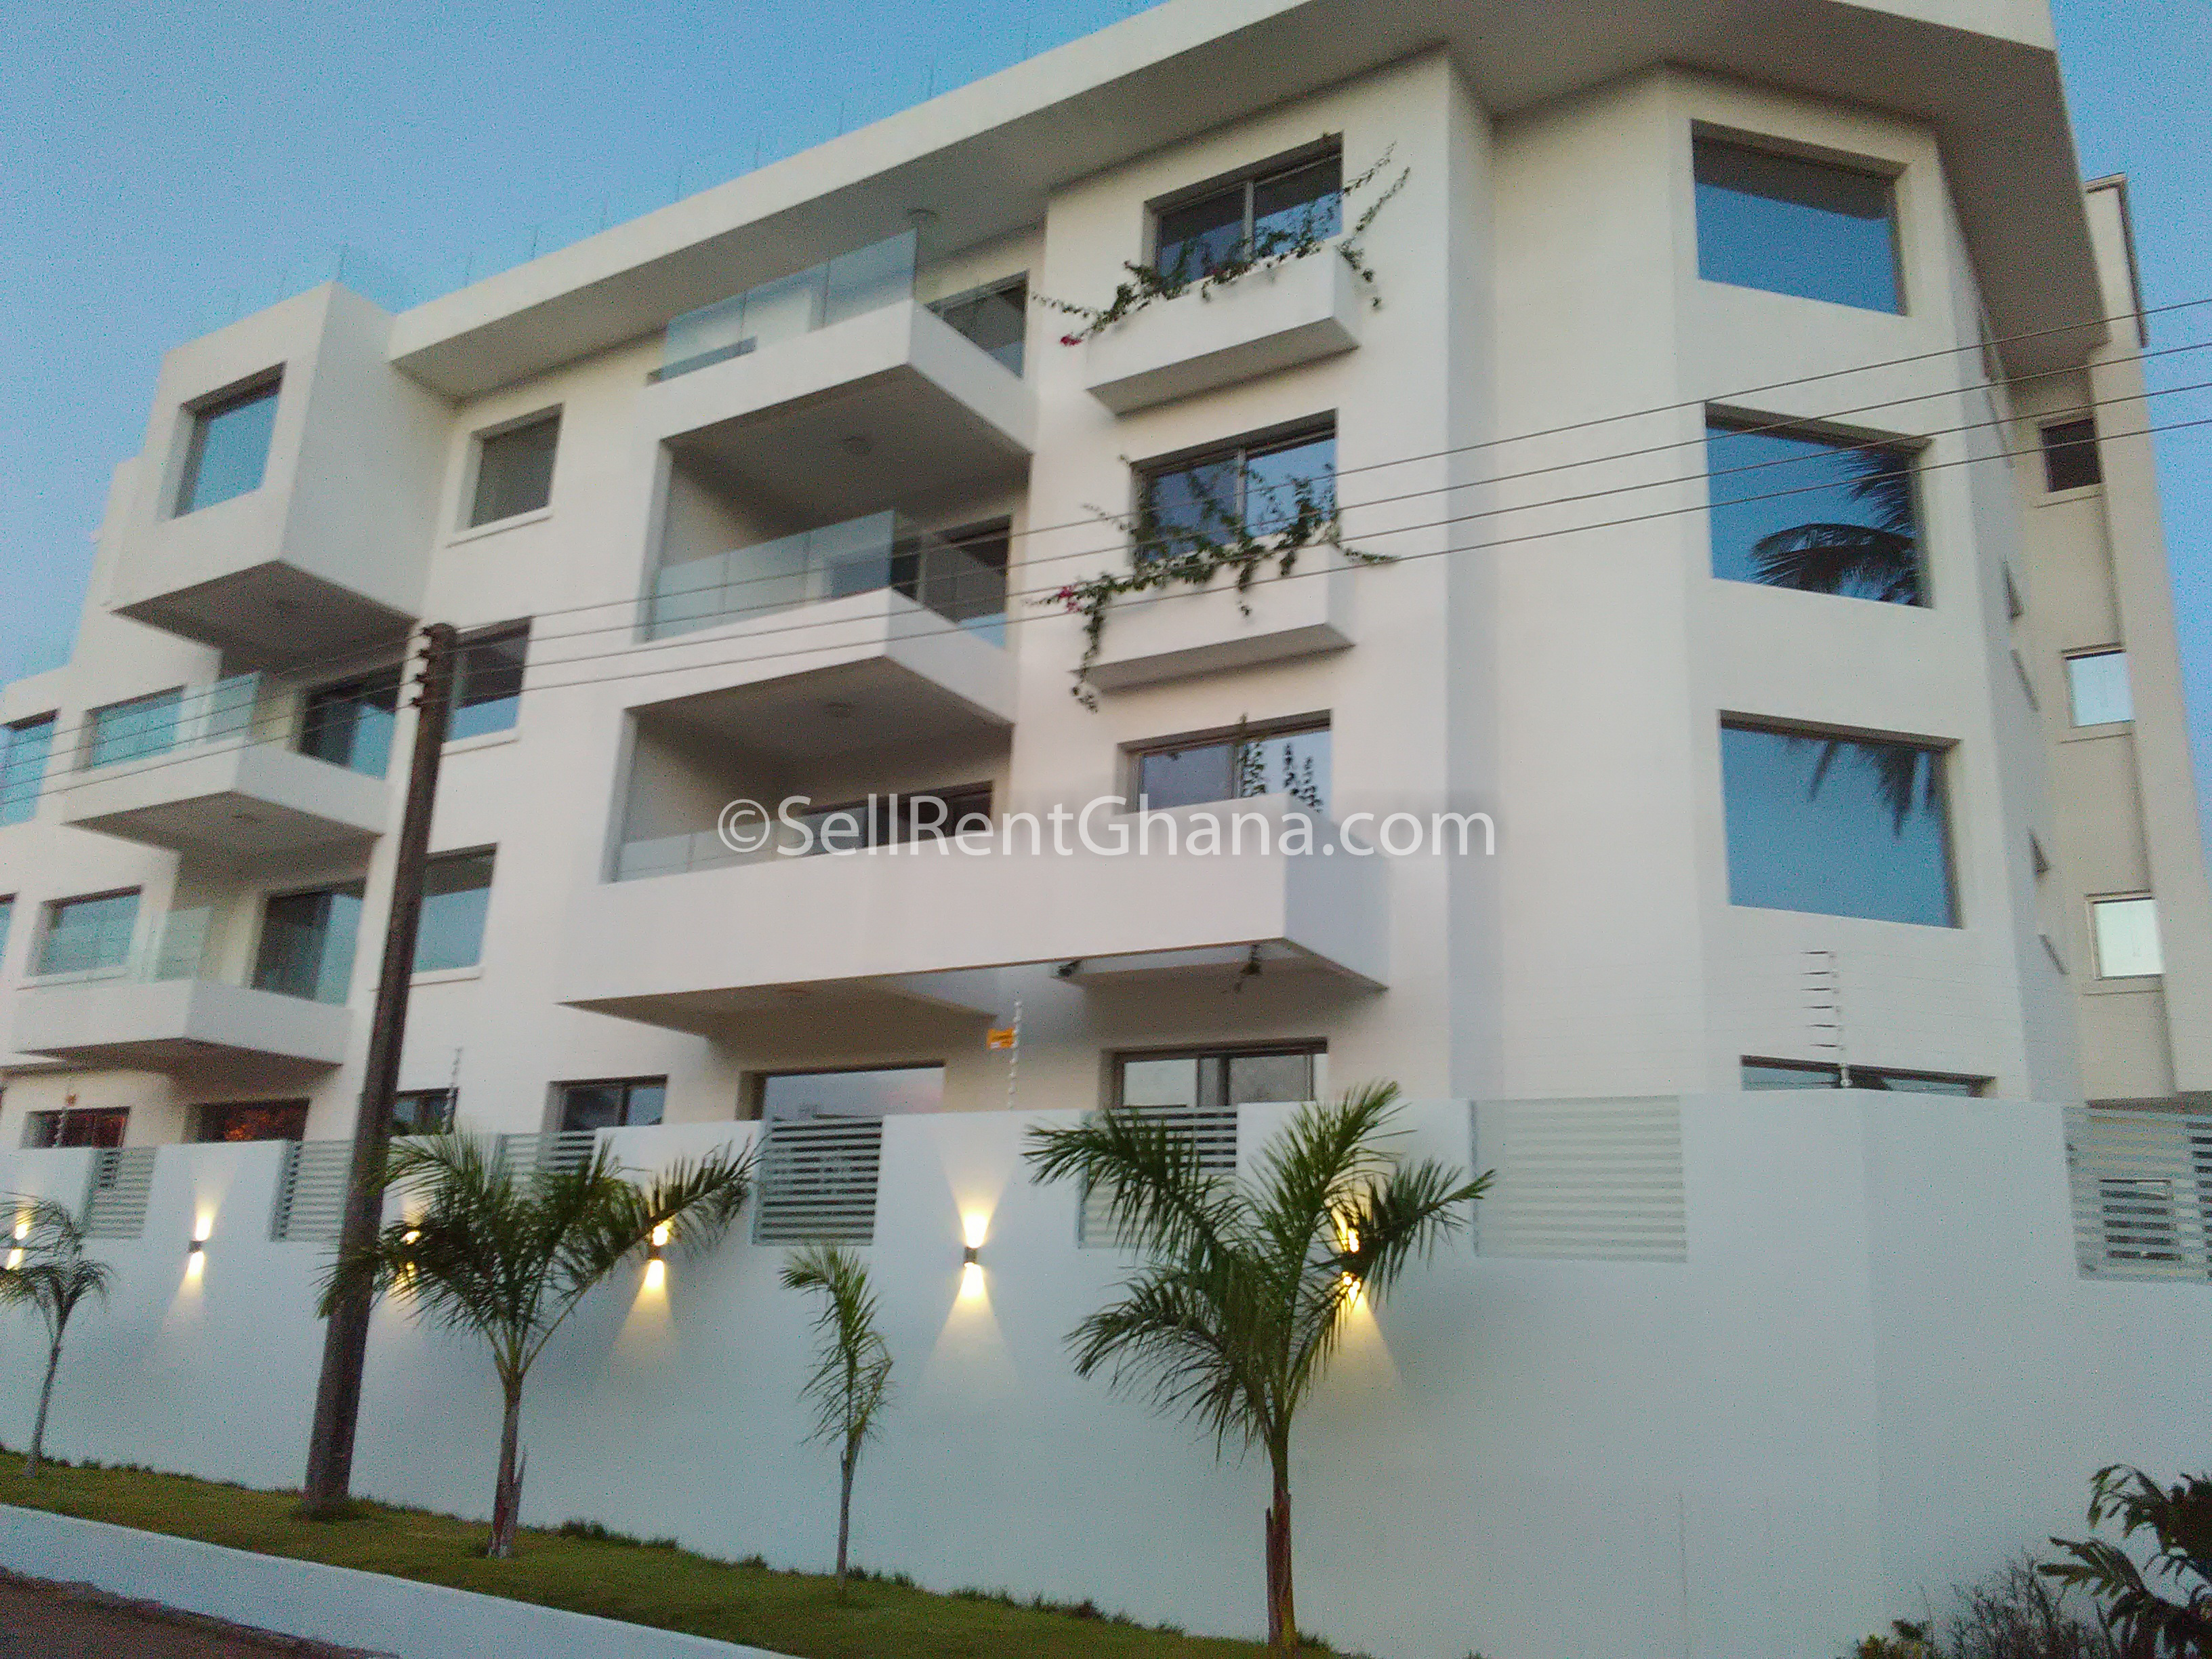 3 bedroom apartment penthouse for sale rent sellrent ghana for Apartment plans in ghana